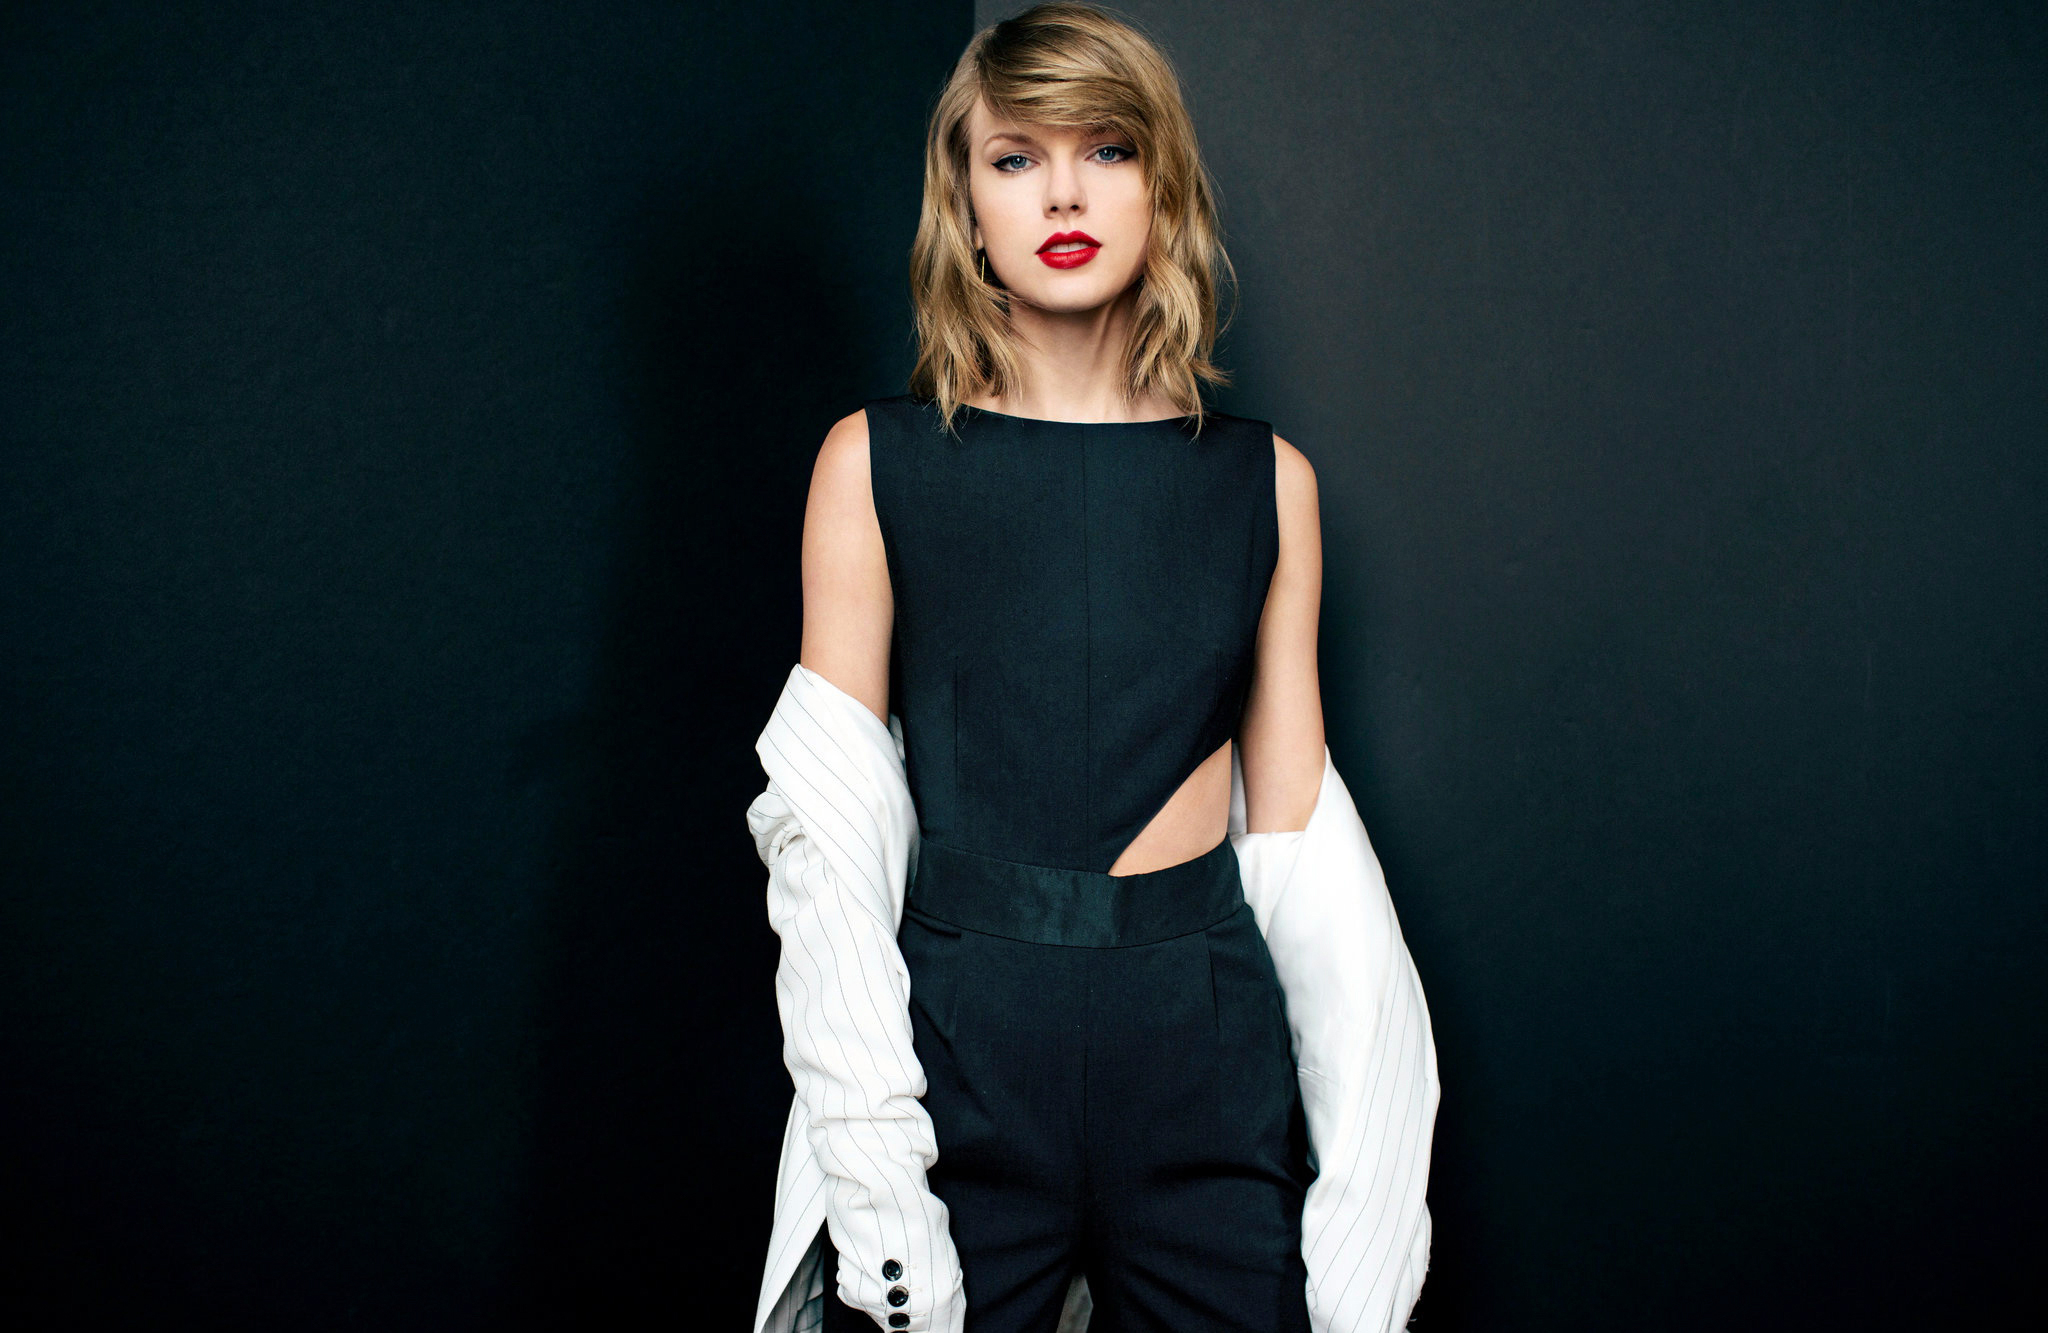 93 Taylor Swift 1989 Wallpapers On Wallpapersafari